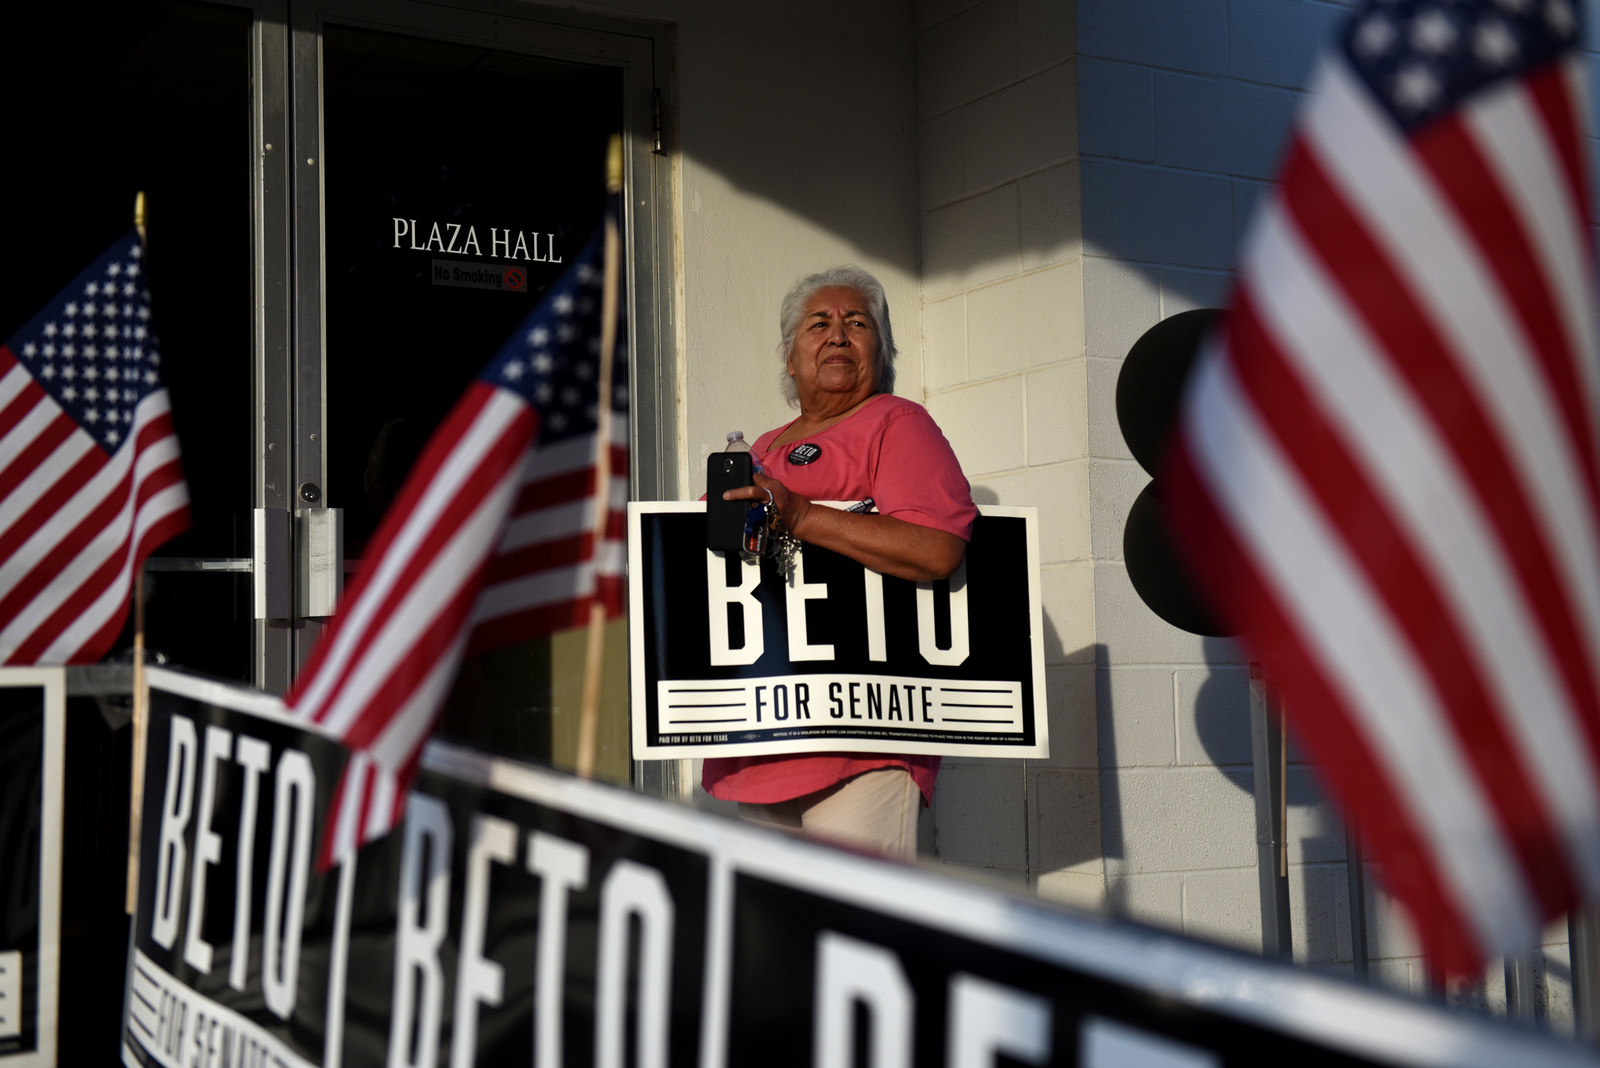 Beto O Rourke Could Be The Democrat Texas Has Been